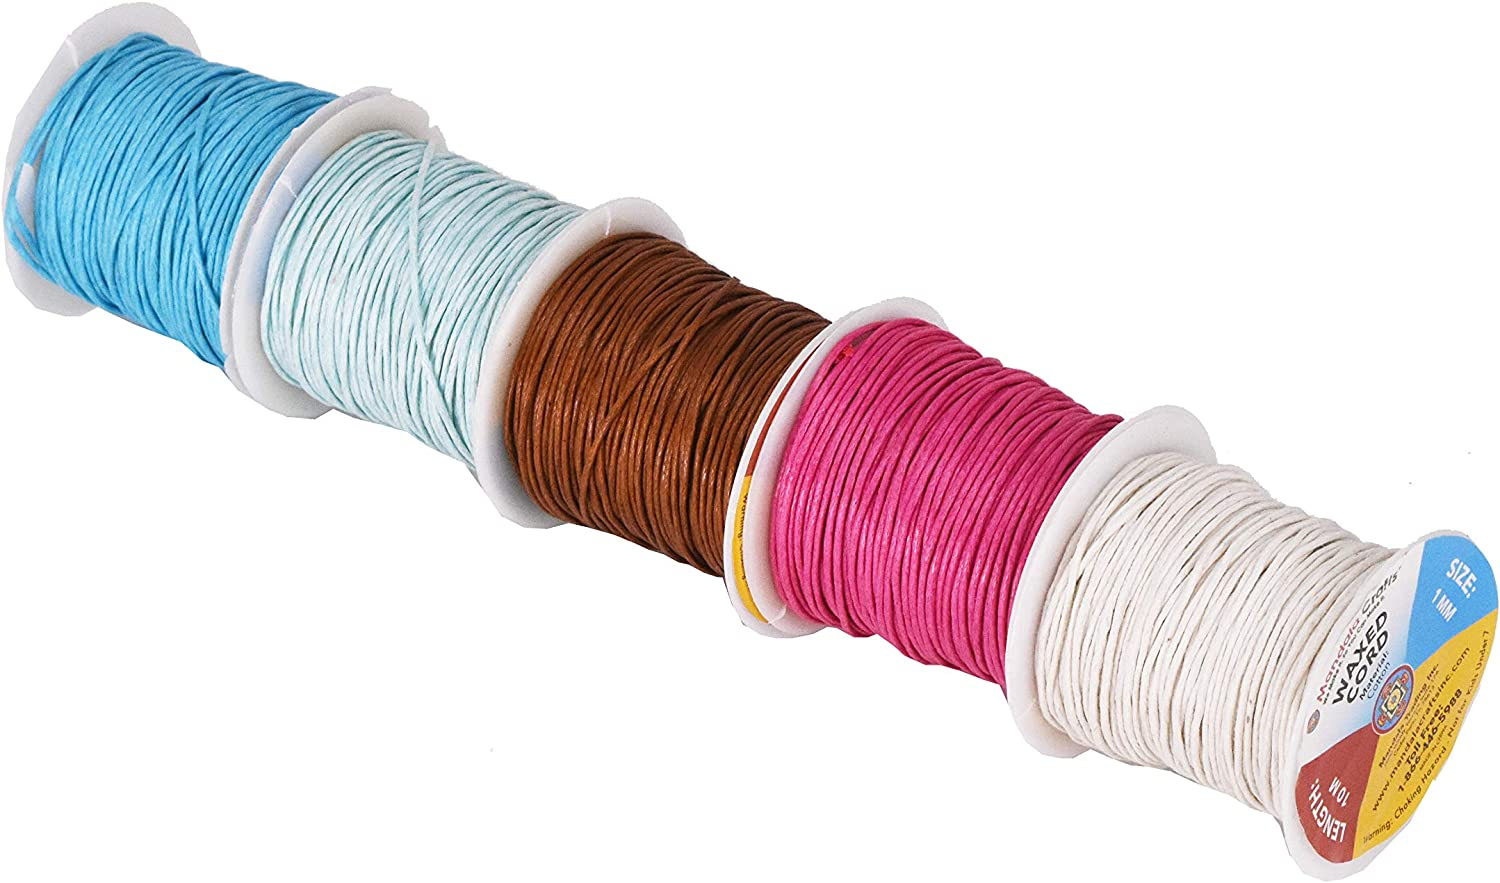 25 Assorted Colors Mandala Crafts 1mm Jewelry Making Crafting Beading Macram/é Waxed Cotton Cord Thread